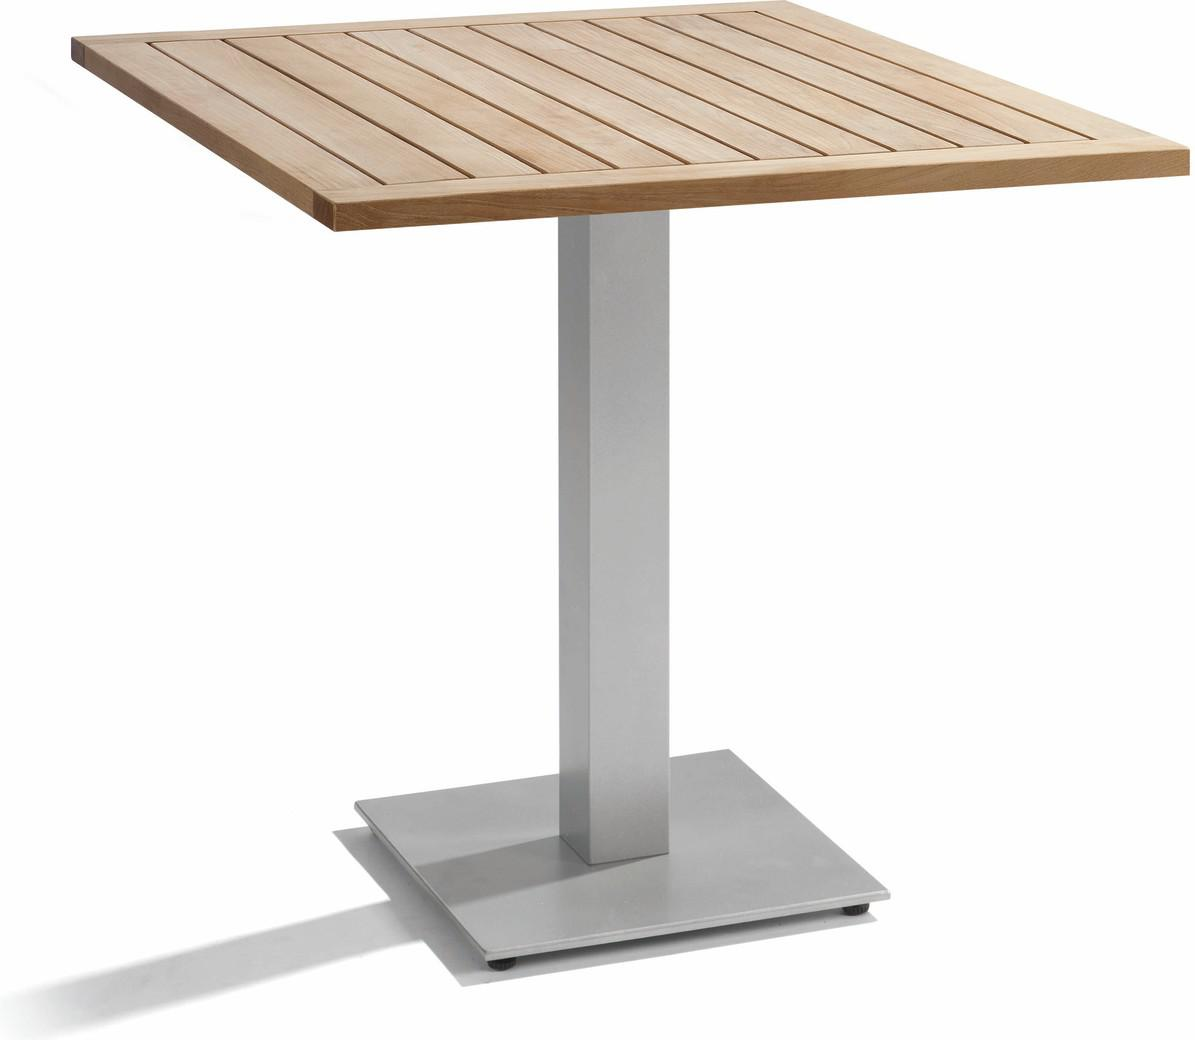 Napoli Bistro table - shingle - Teak 42